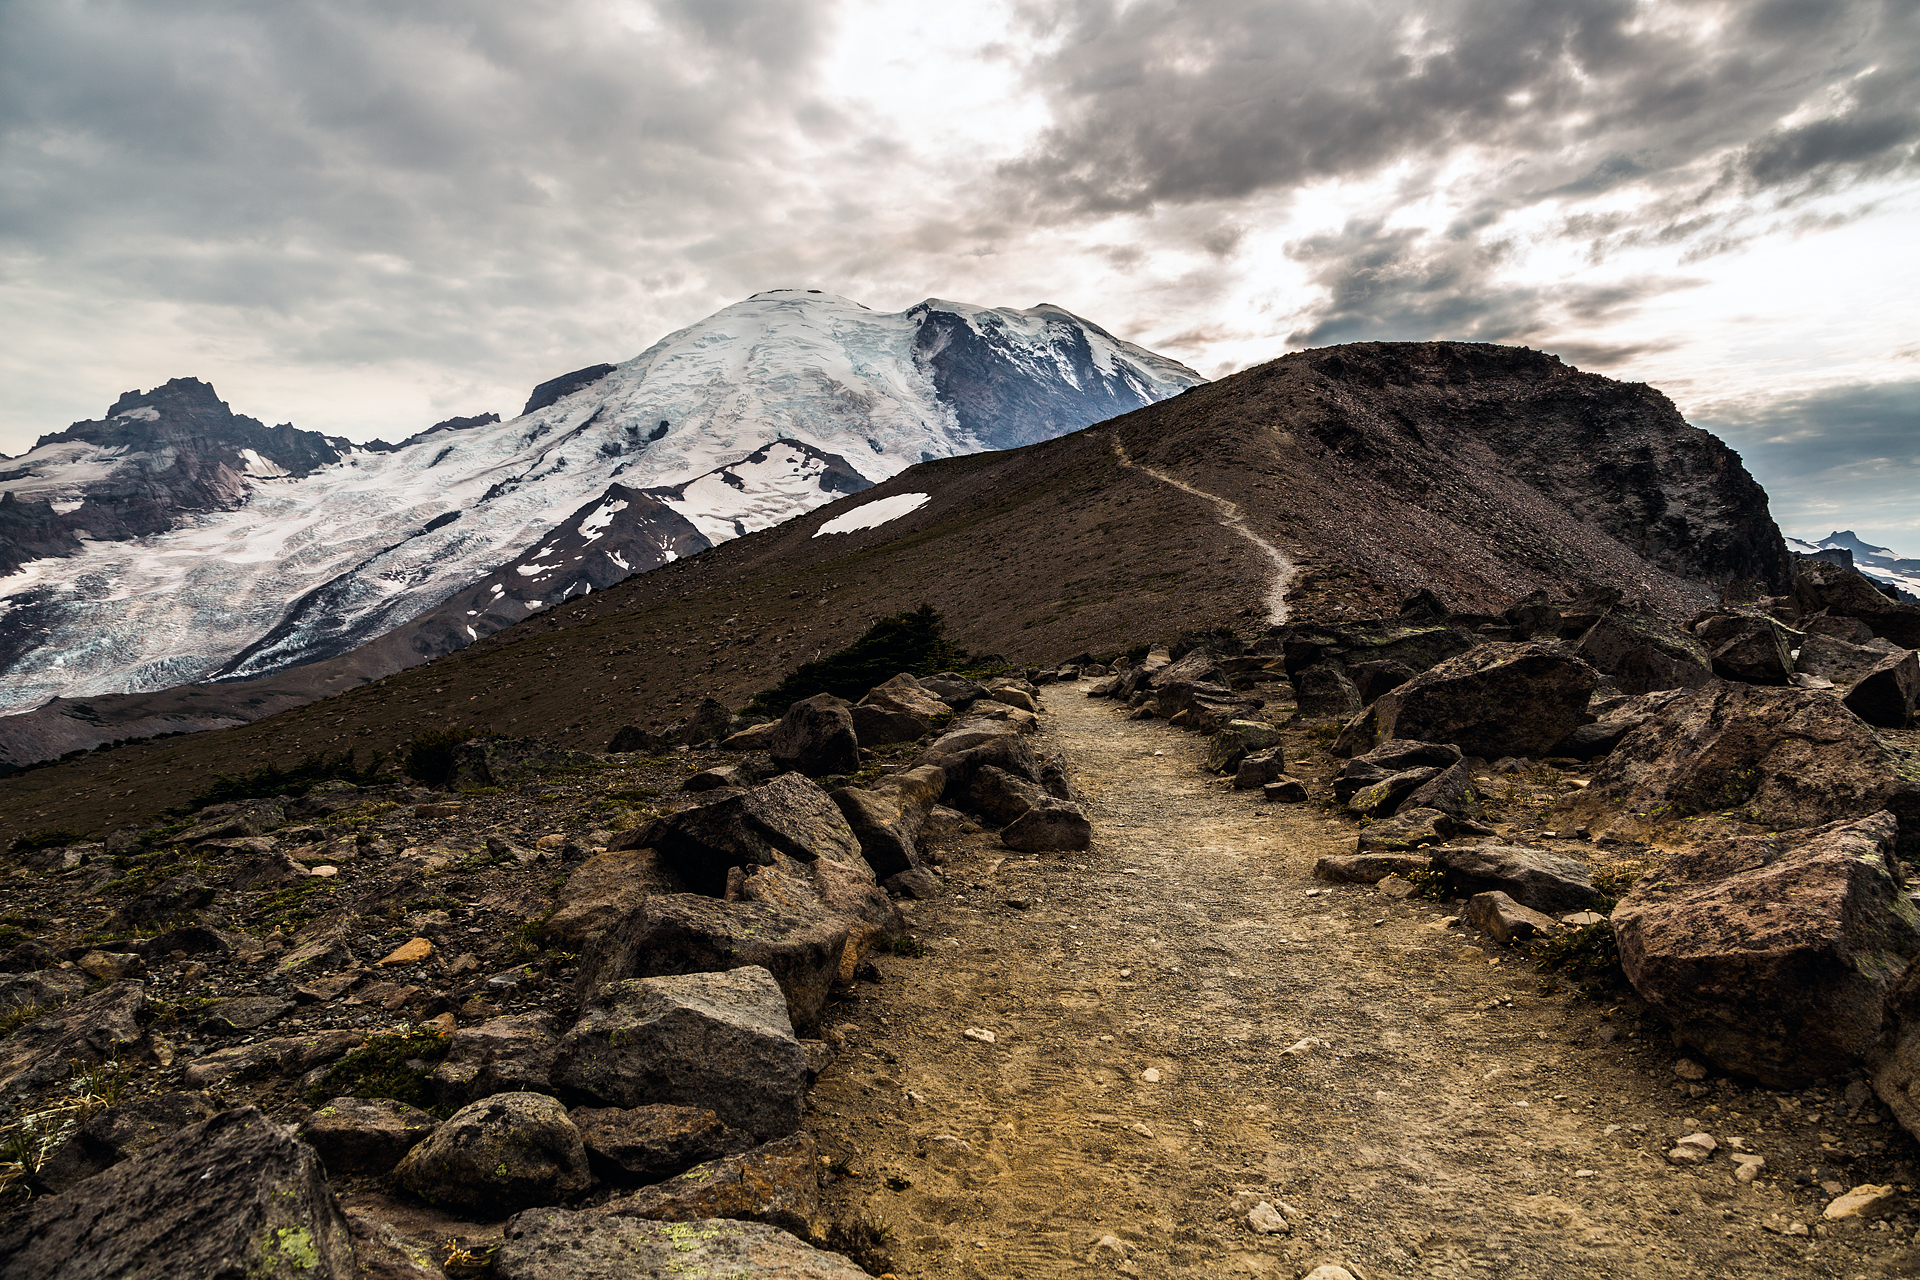 20130822-Rainier-Day-2---Sunrise-618.jpg